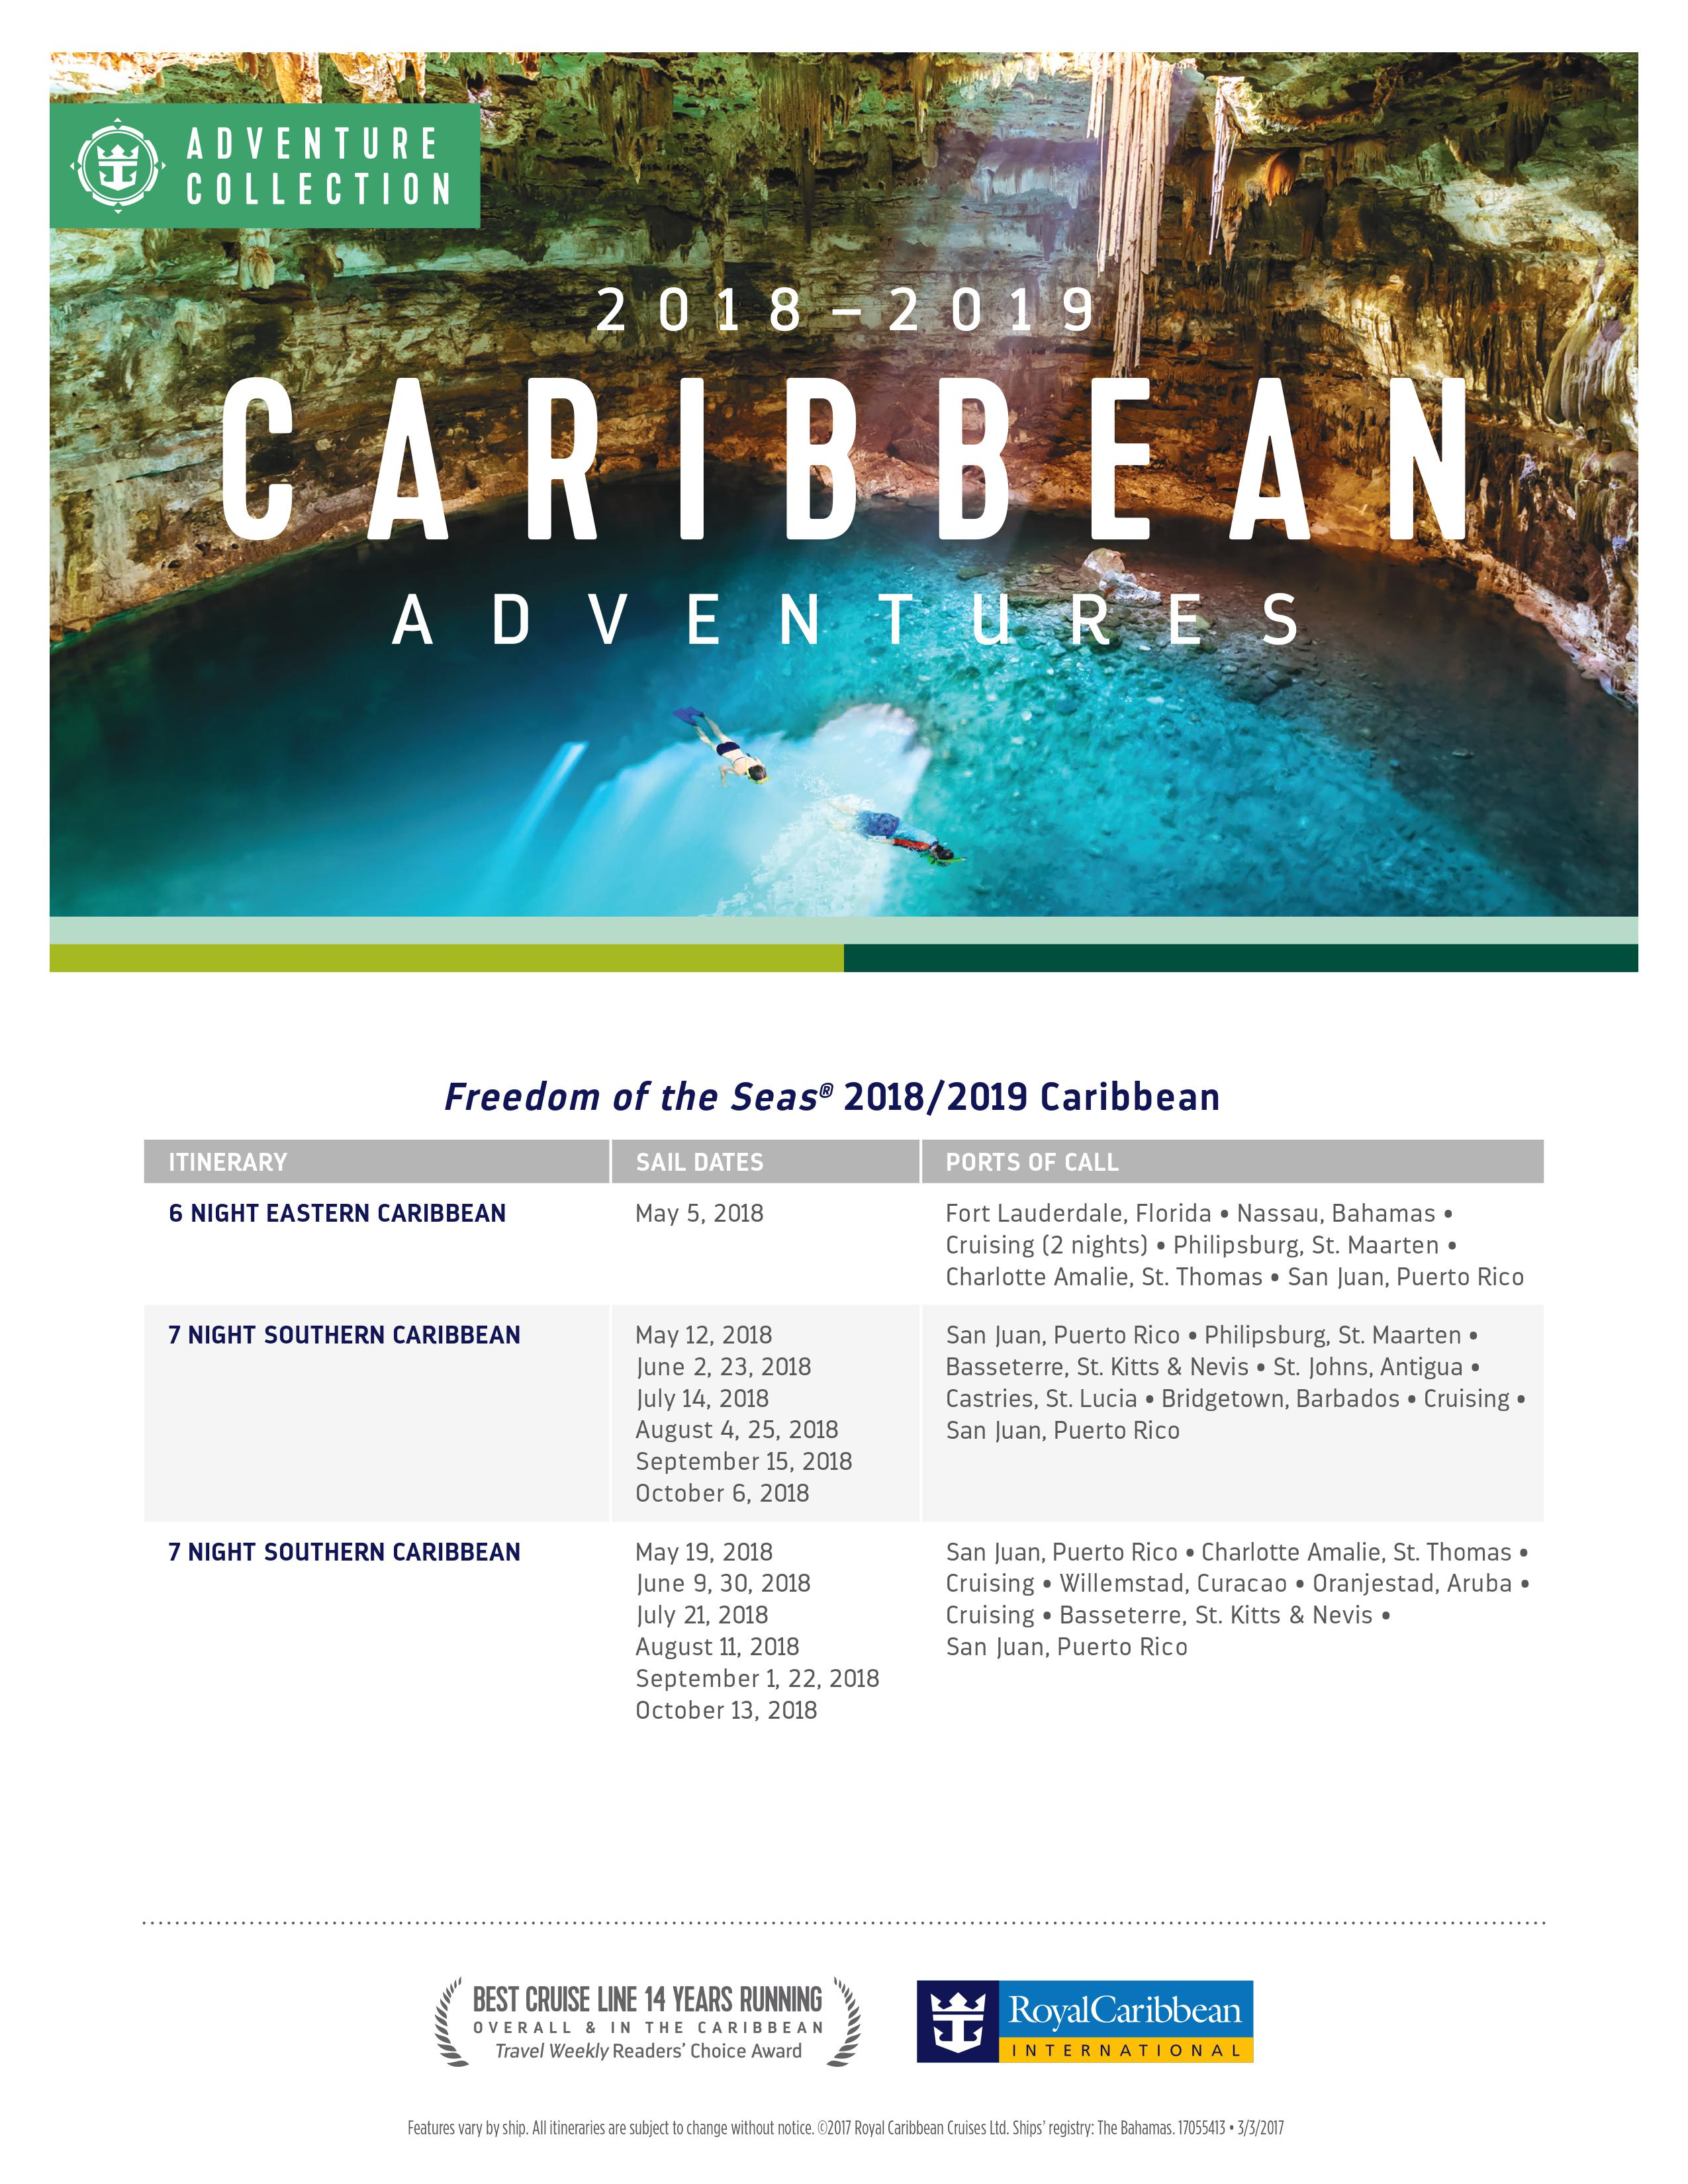 Royal Caribbean To Relocate Freedom Of The Seas To San Juan For 2018 2019 Season Royal